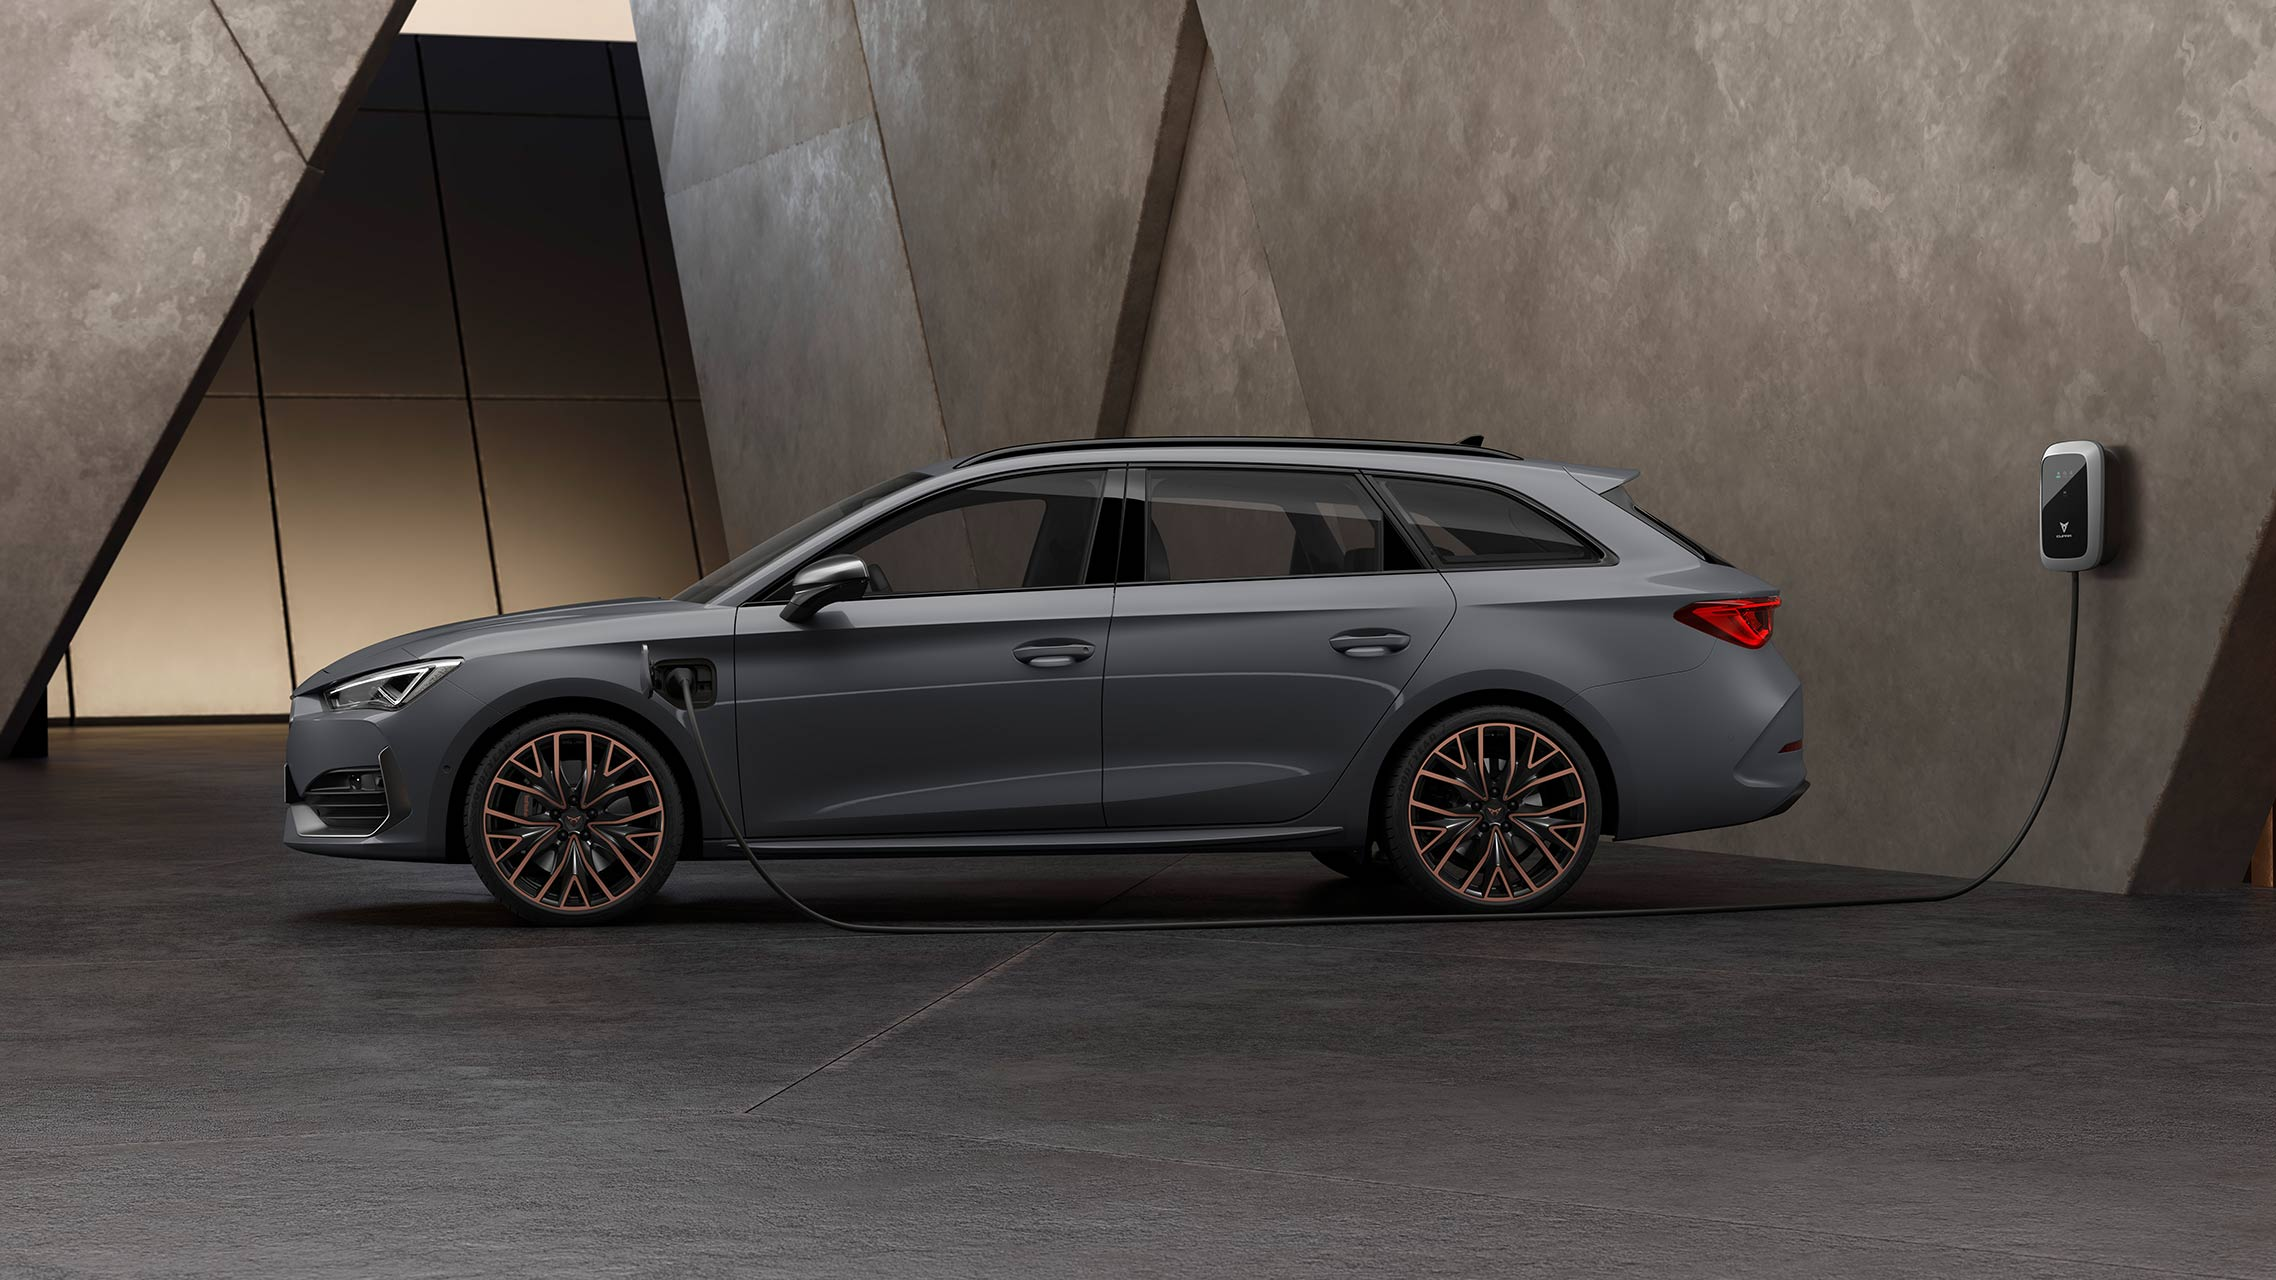 new CUPRA Leon Estate e-HYBRID Family Sports Car in graphene grey with electric range of up to 6km and 3 hours charging time